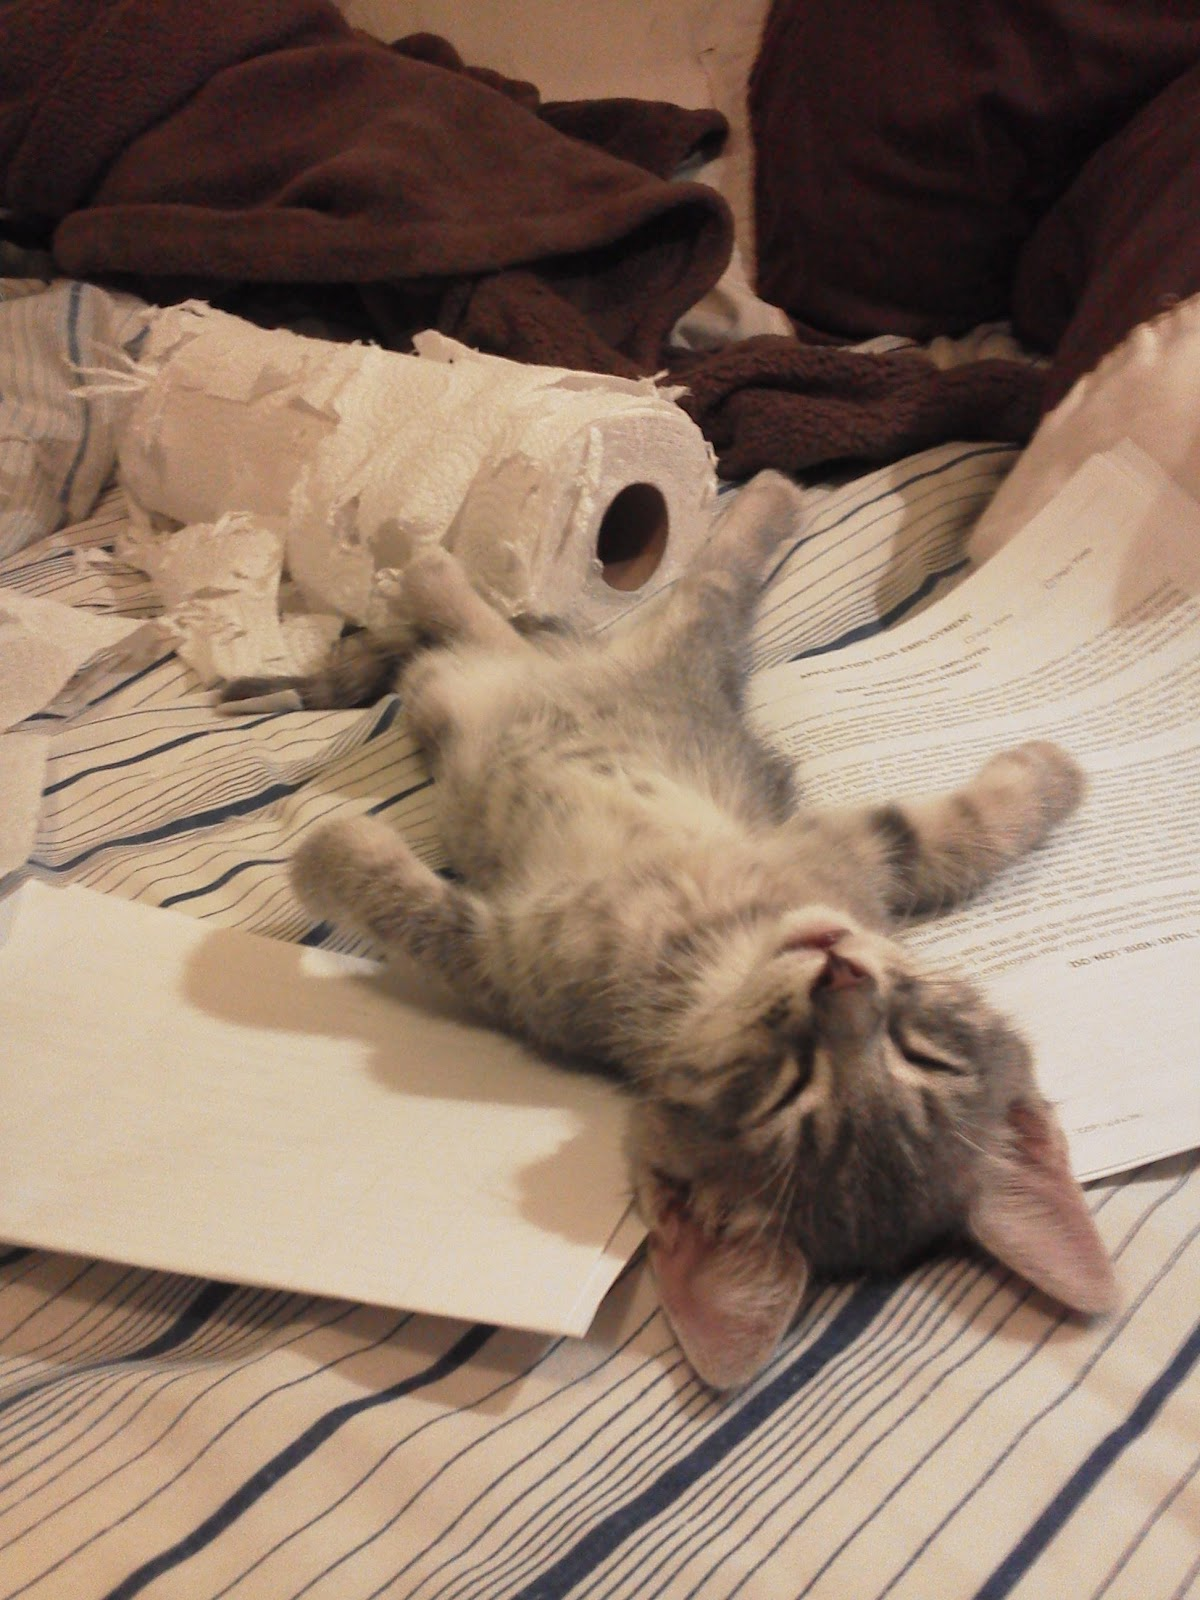 Cute!: Why is this kitten so tired?